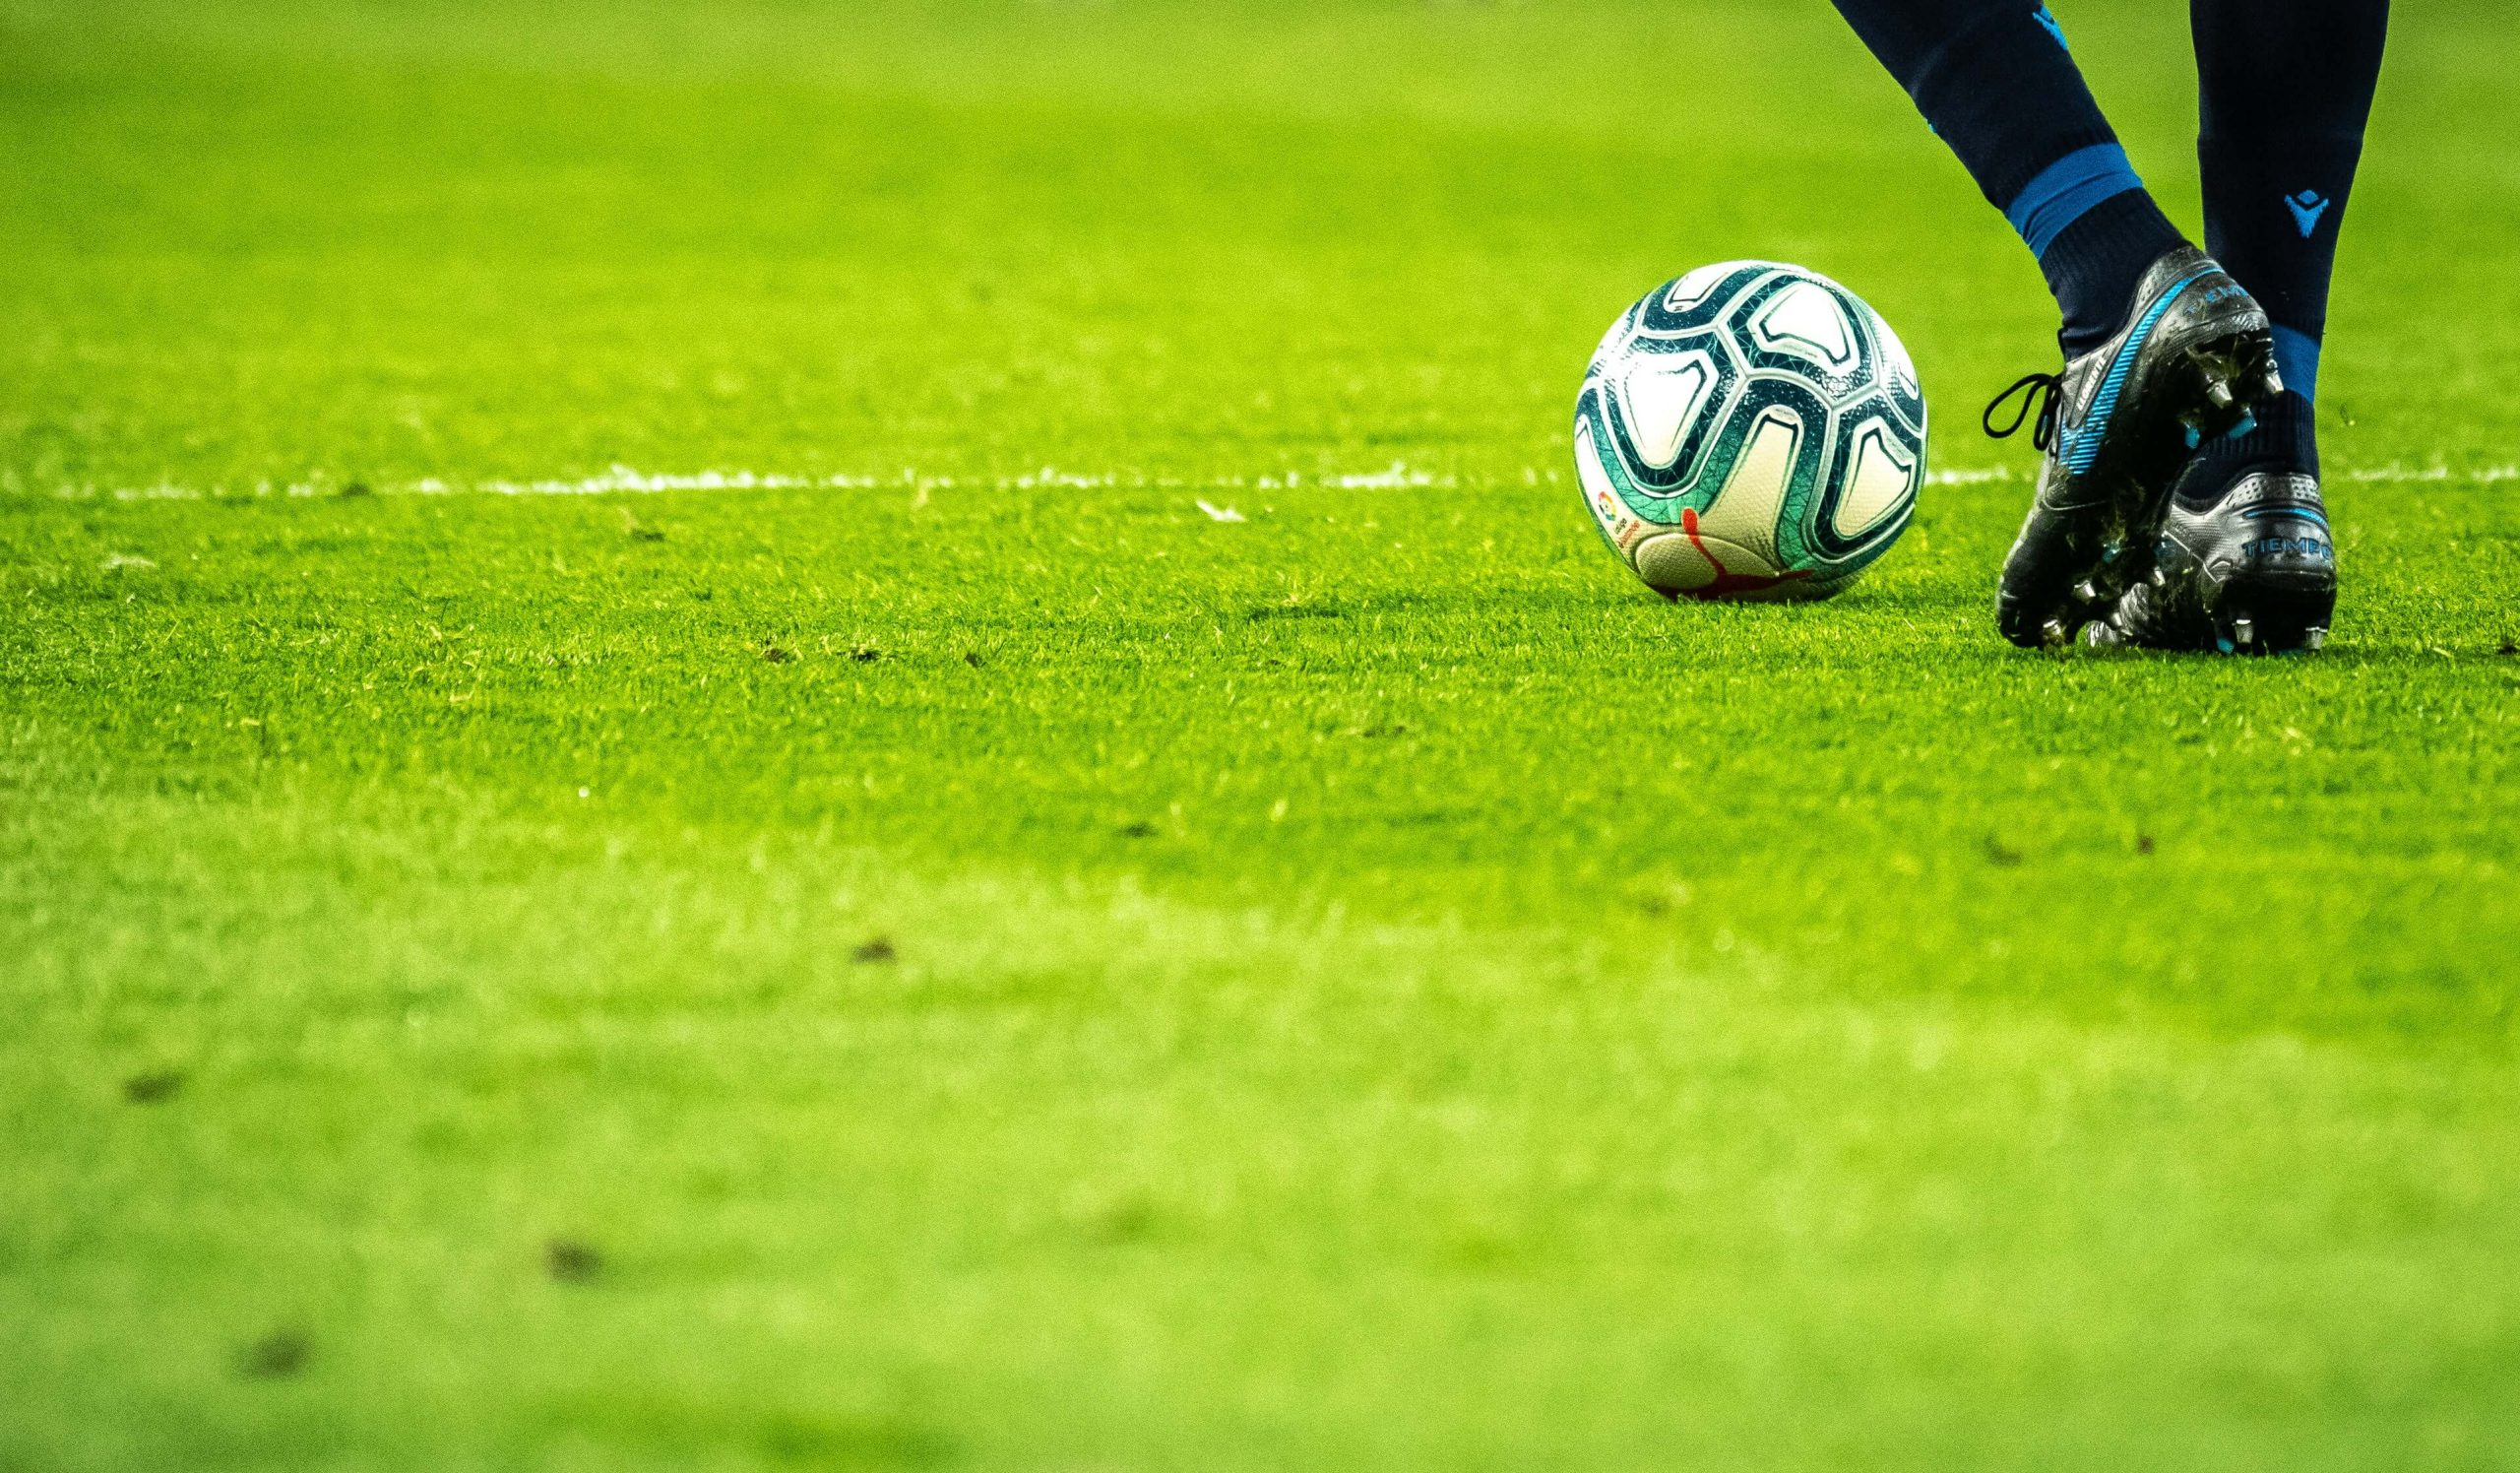 Major Soccer Clubs Push Crypto Tokens, But Some Fans Label It A Cash Grab